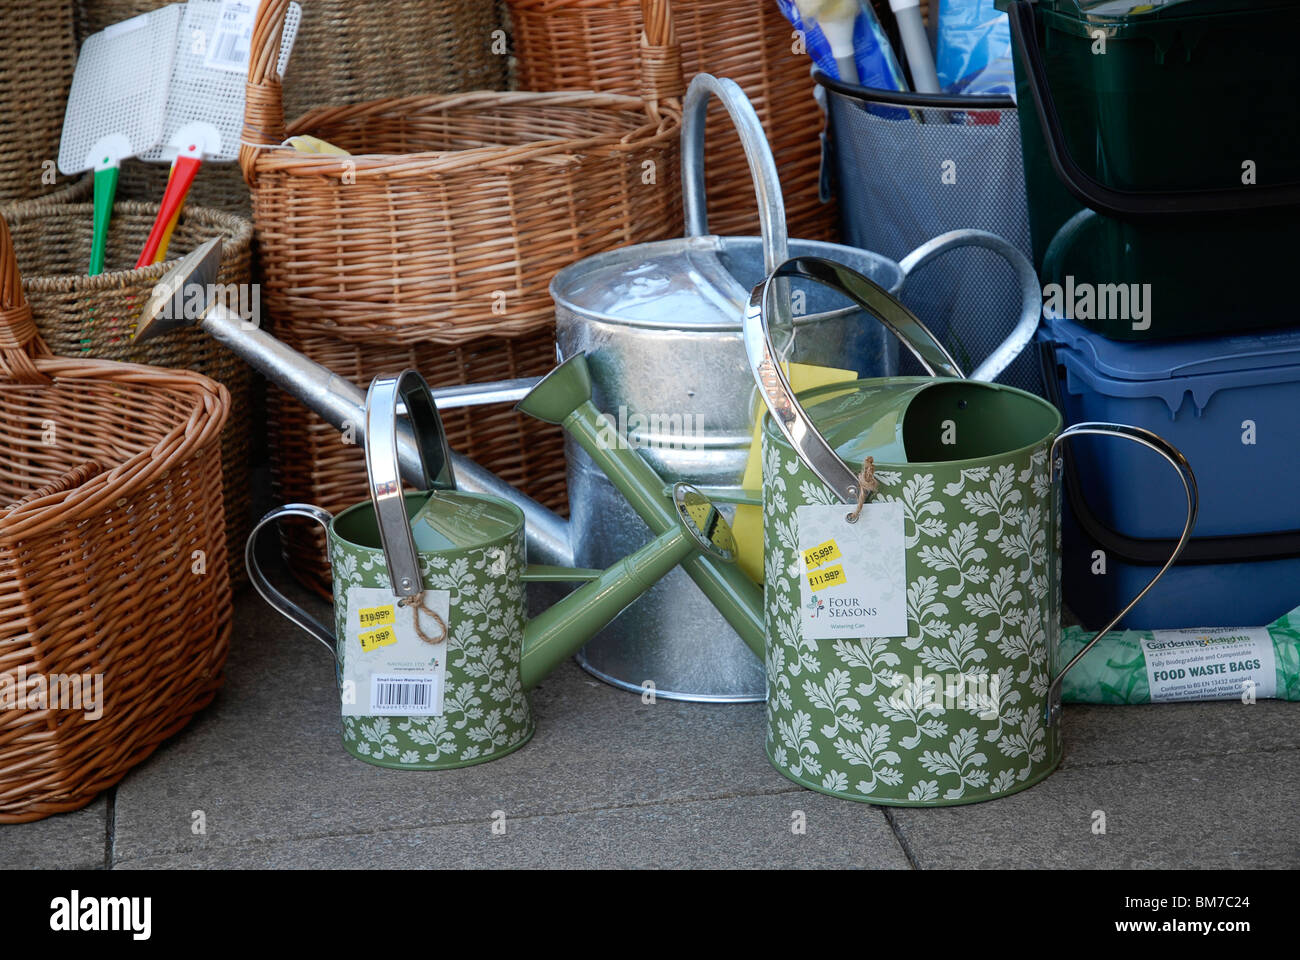 Watering cans outside Frank Gilberts Hardware Store in Market Harborough, Leics., UK. - Stock Image